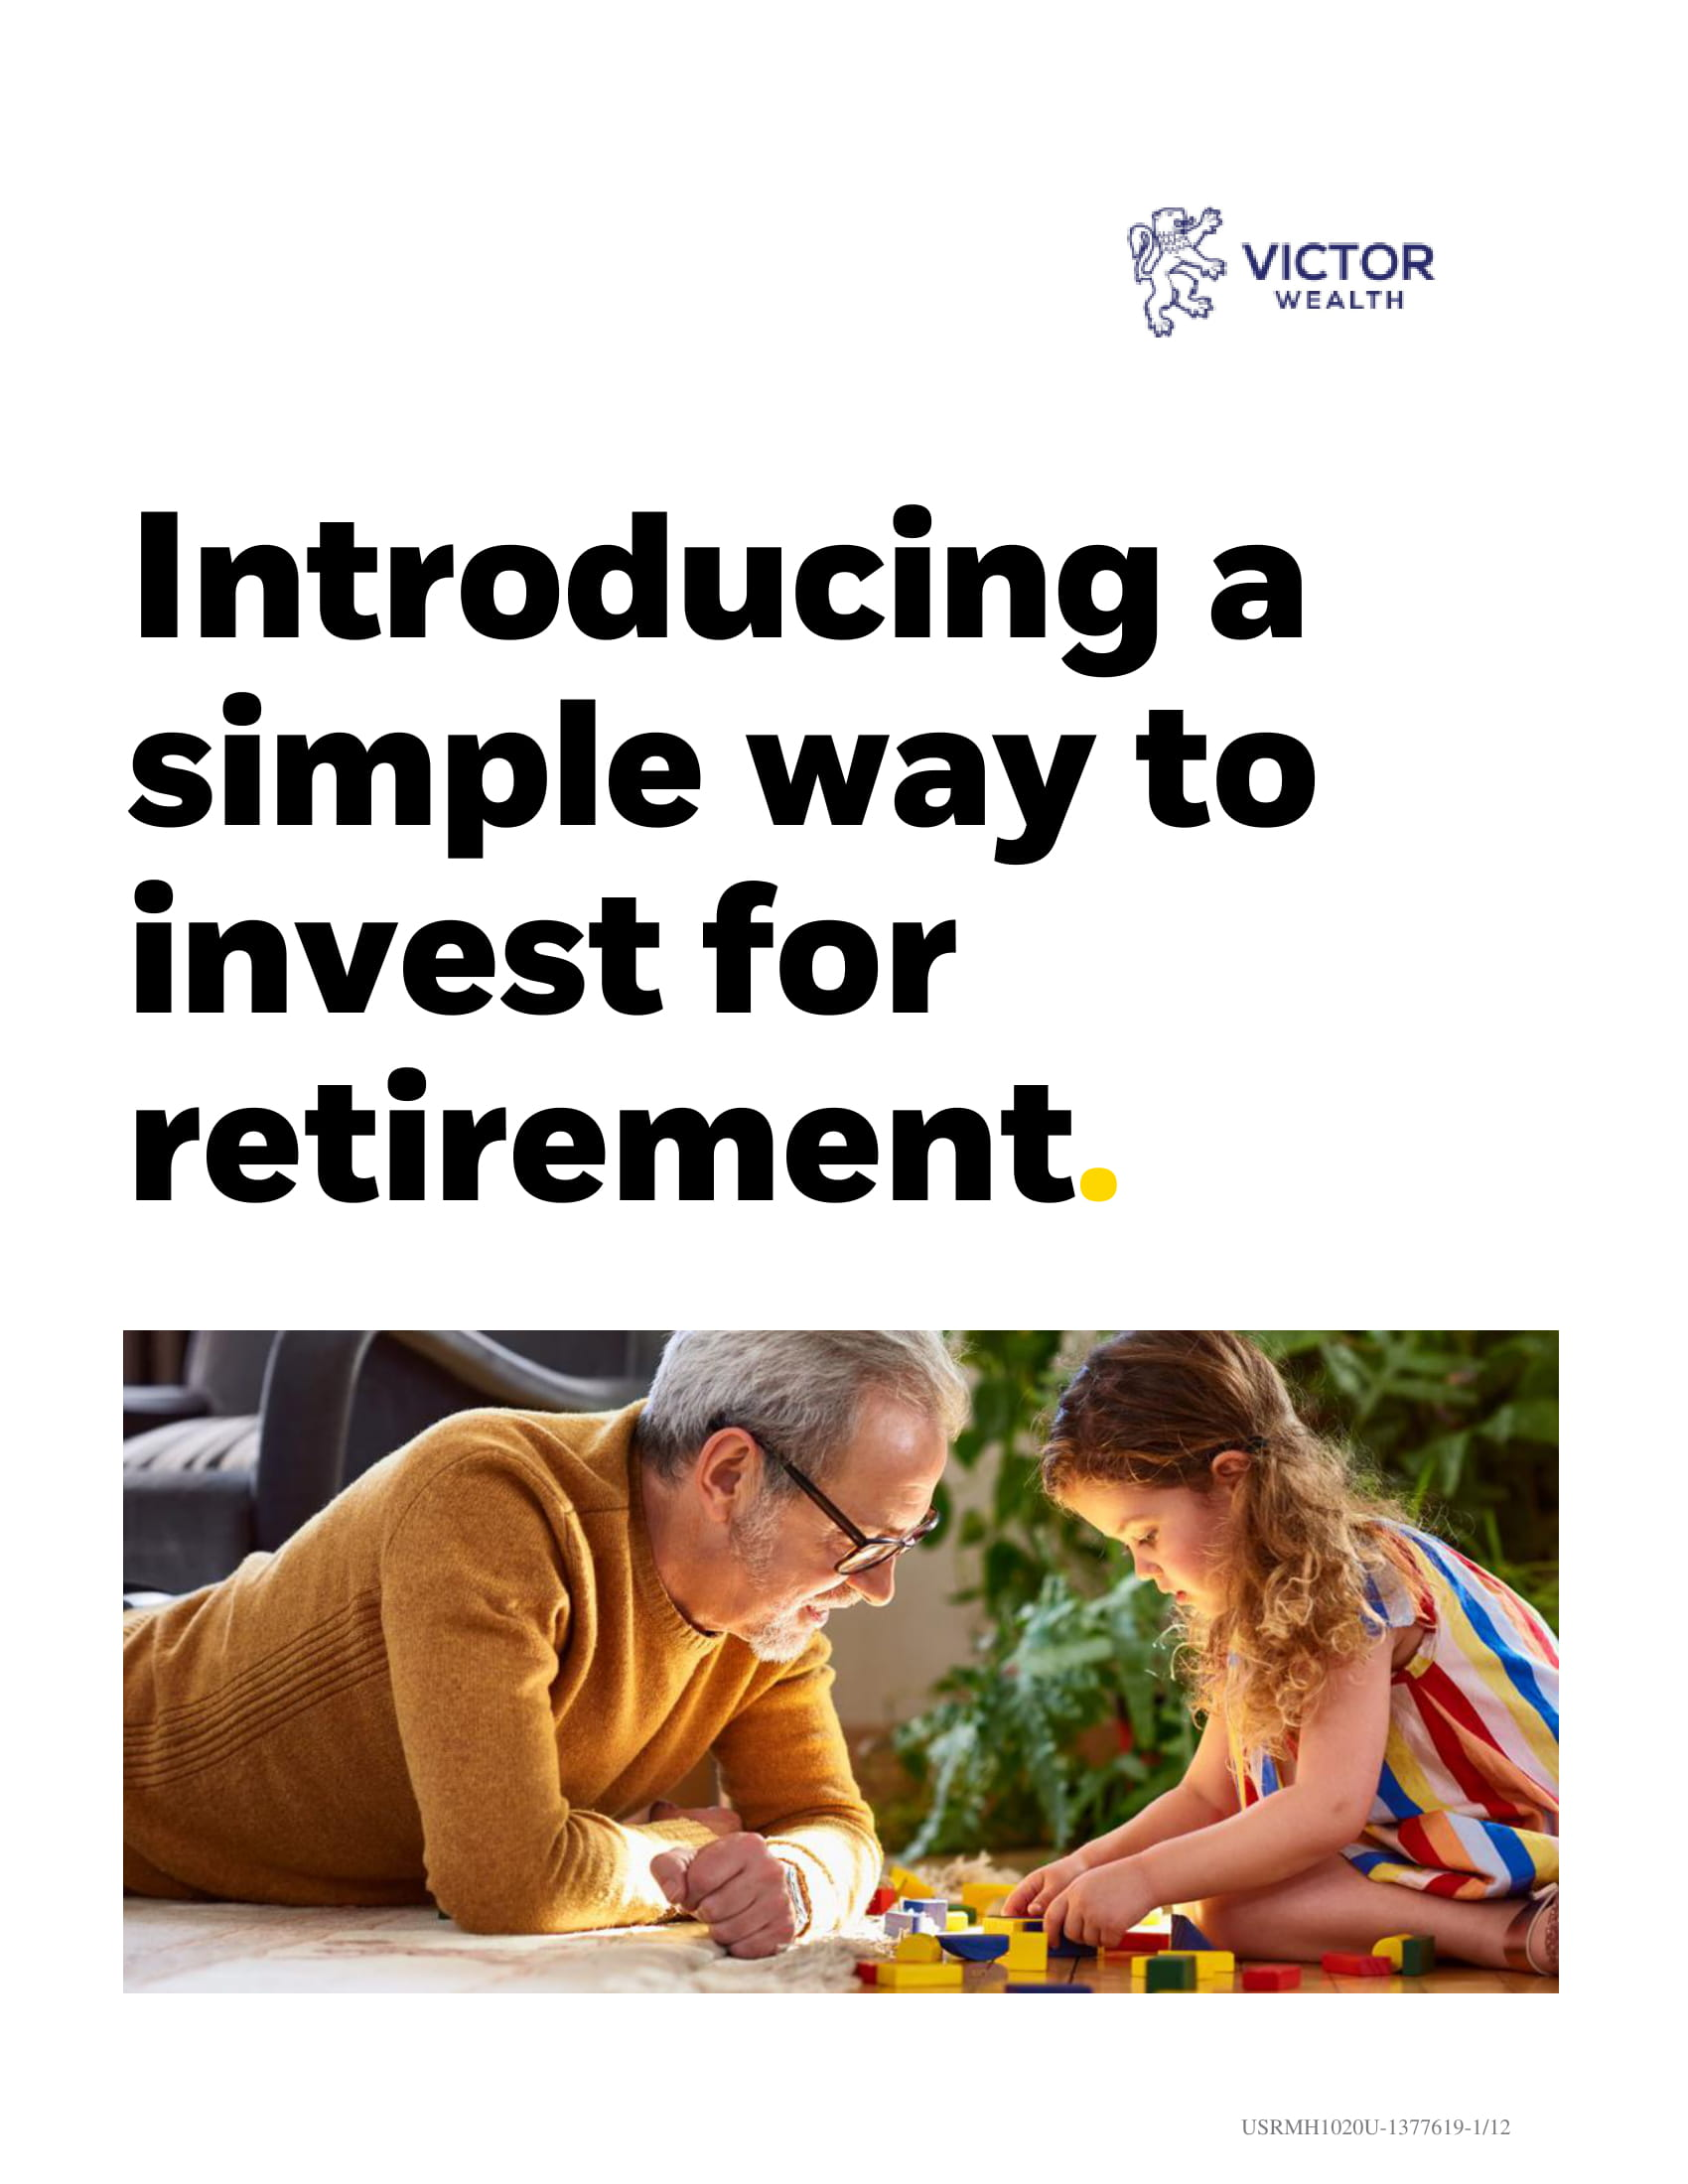 Introducing a Simple Way to Invest for Retirement Guide